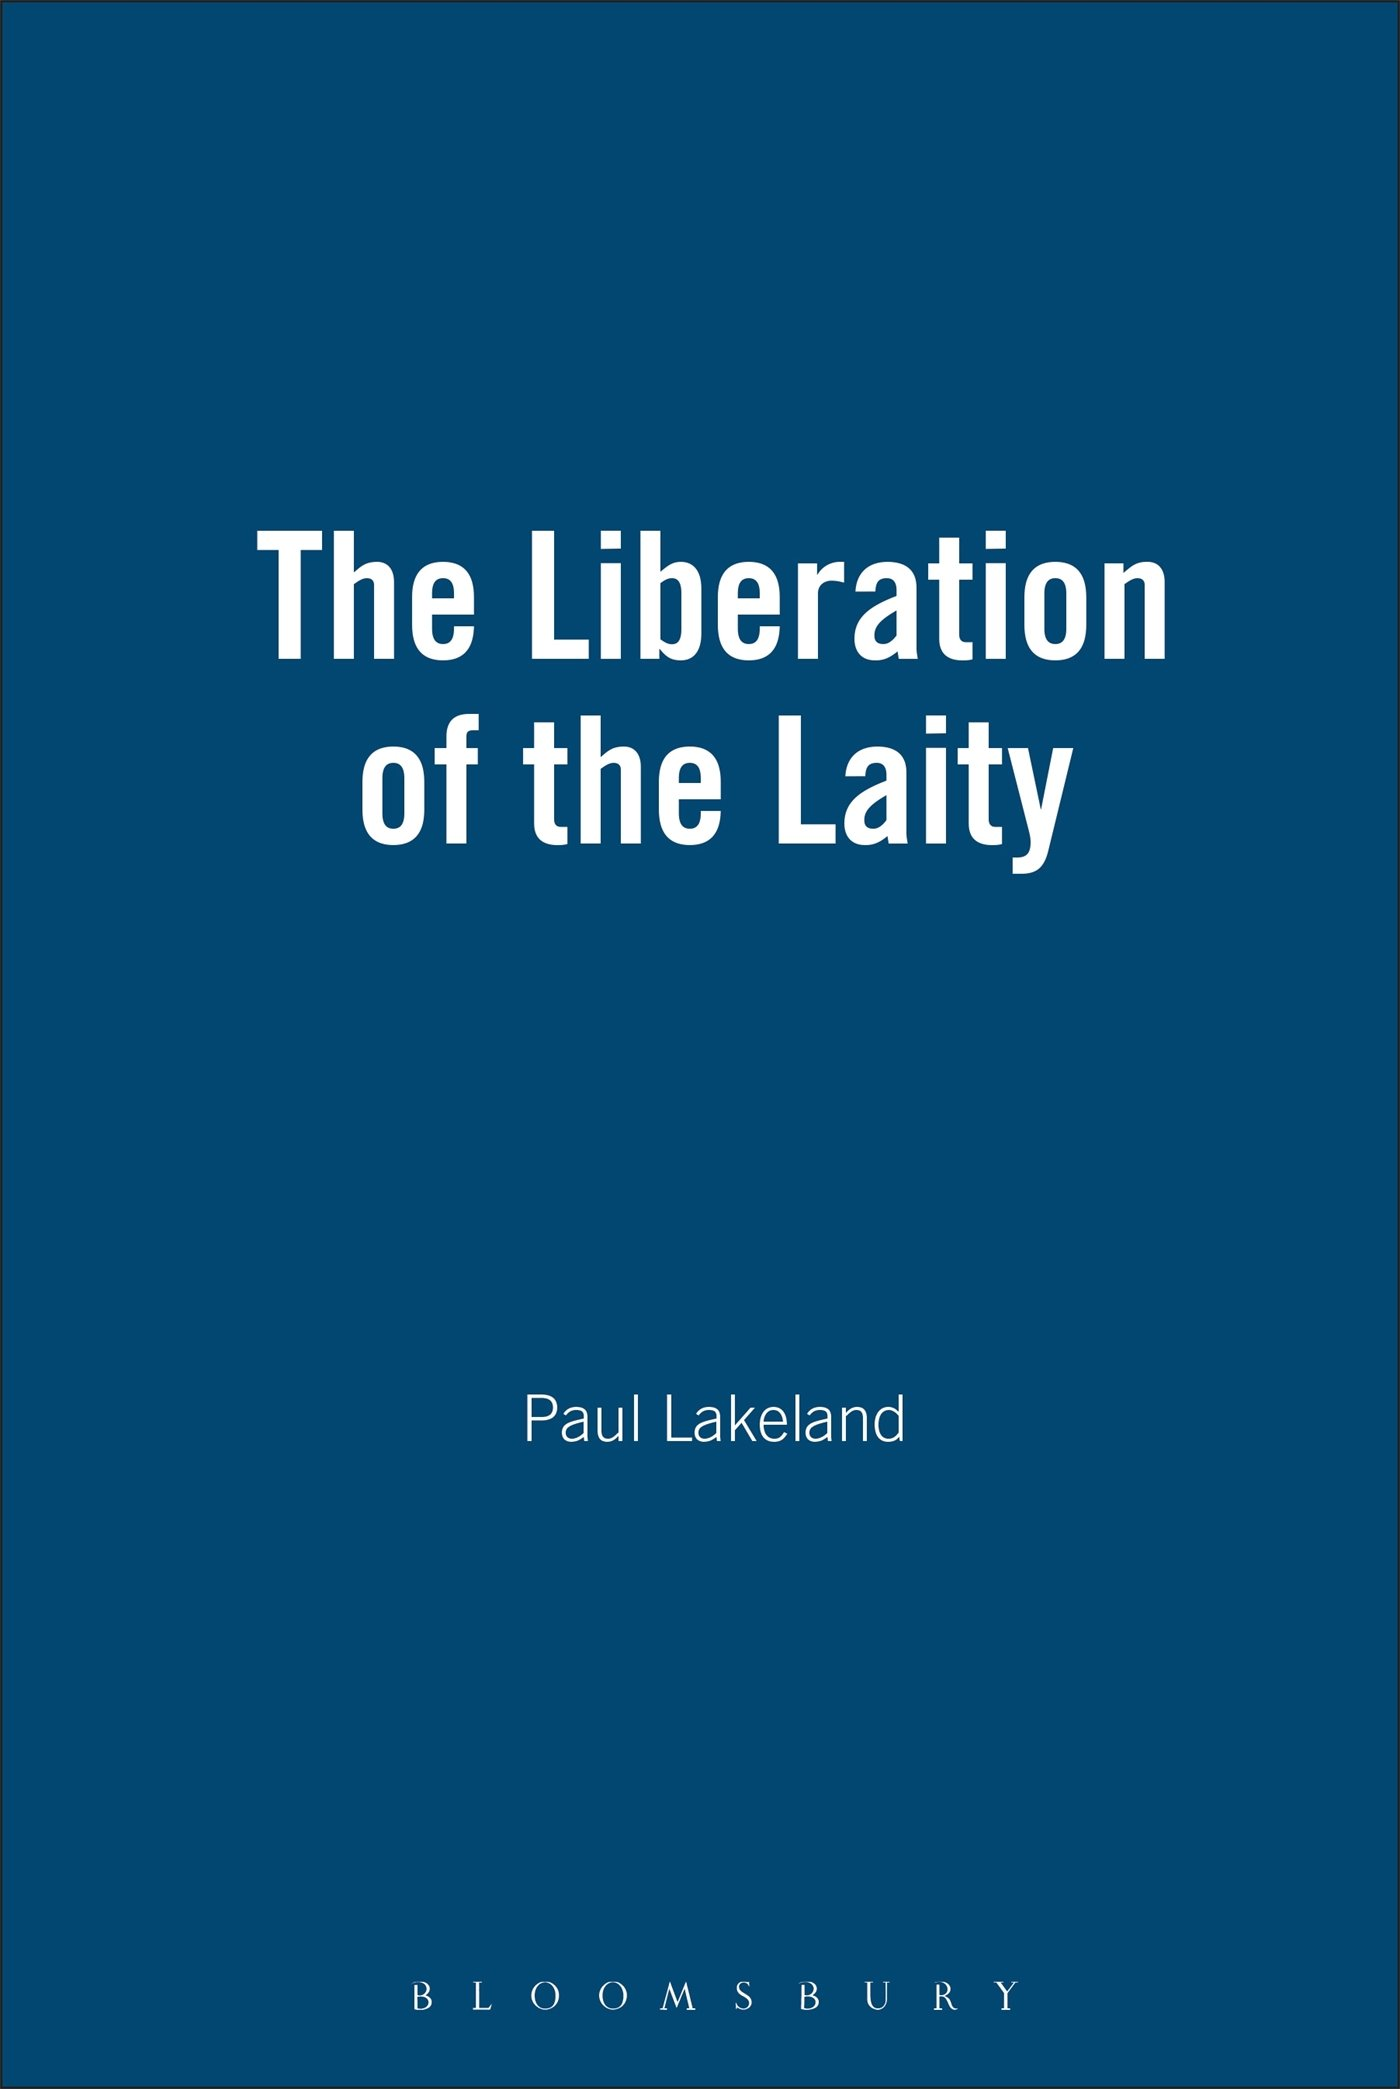 The Liberation of the Laity